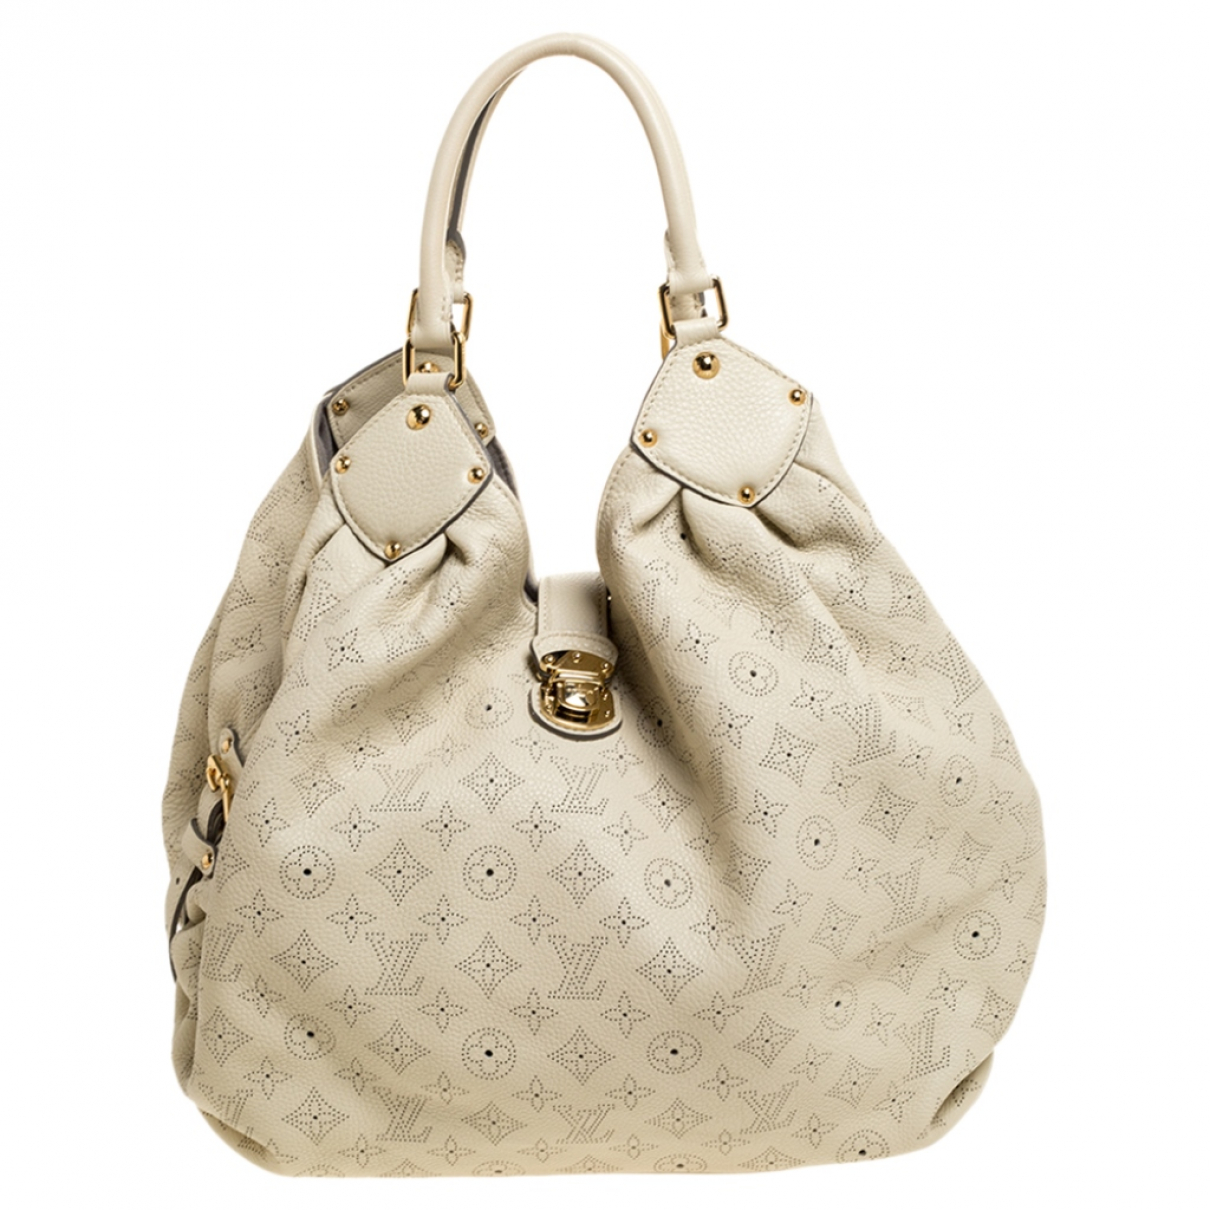 Louis Vuitton Mahina White Leather handbag for Women N